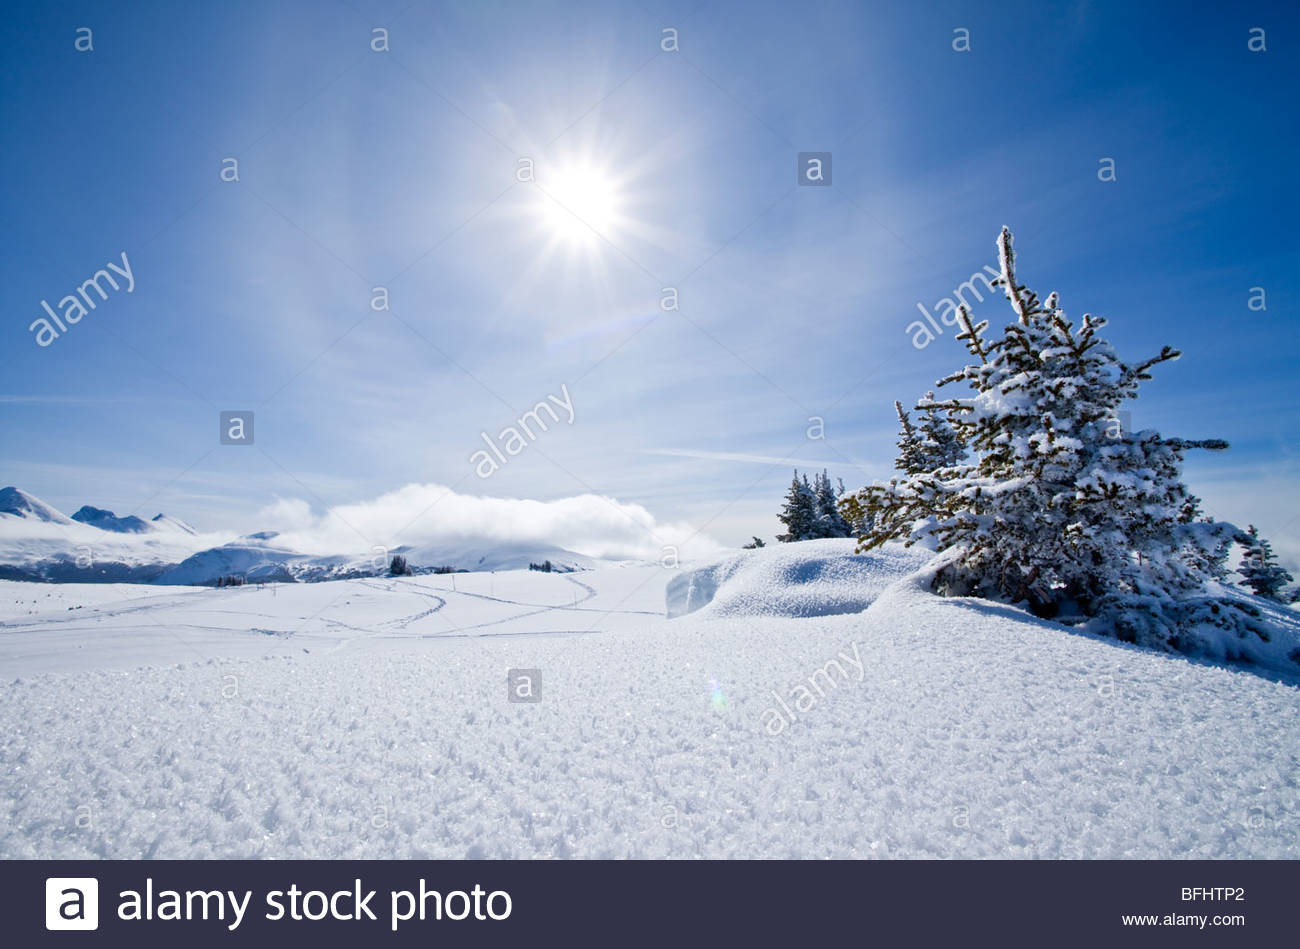 Winter Landscape at Sunshine Village Ski Resort, Alberta Stock Photo